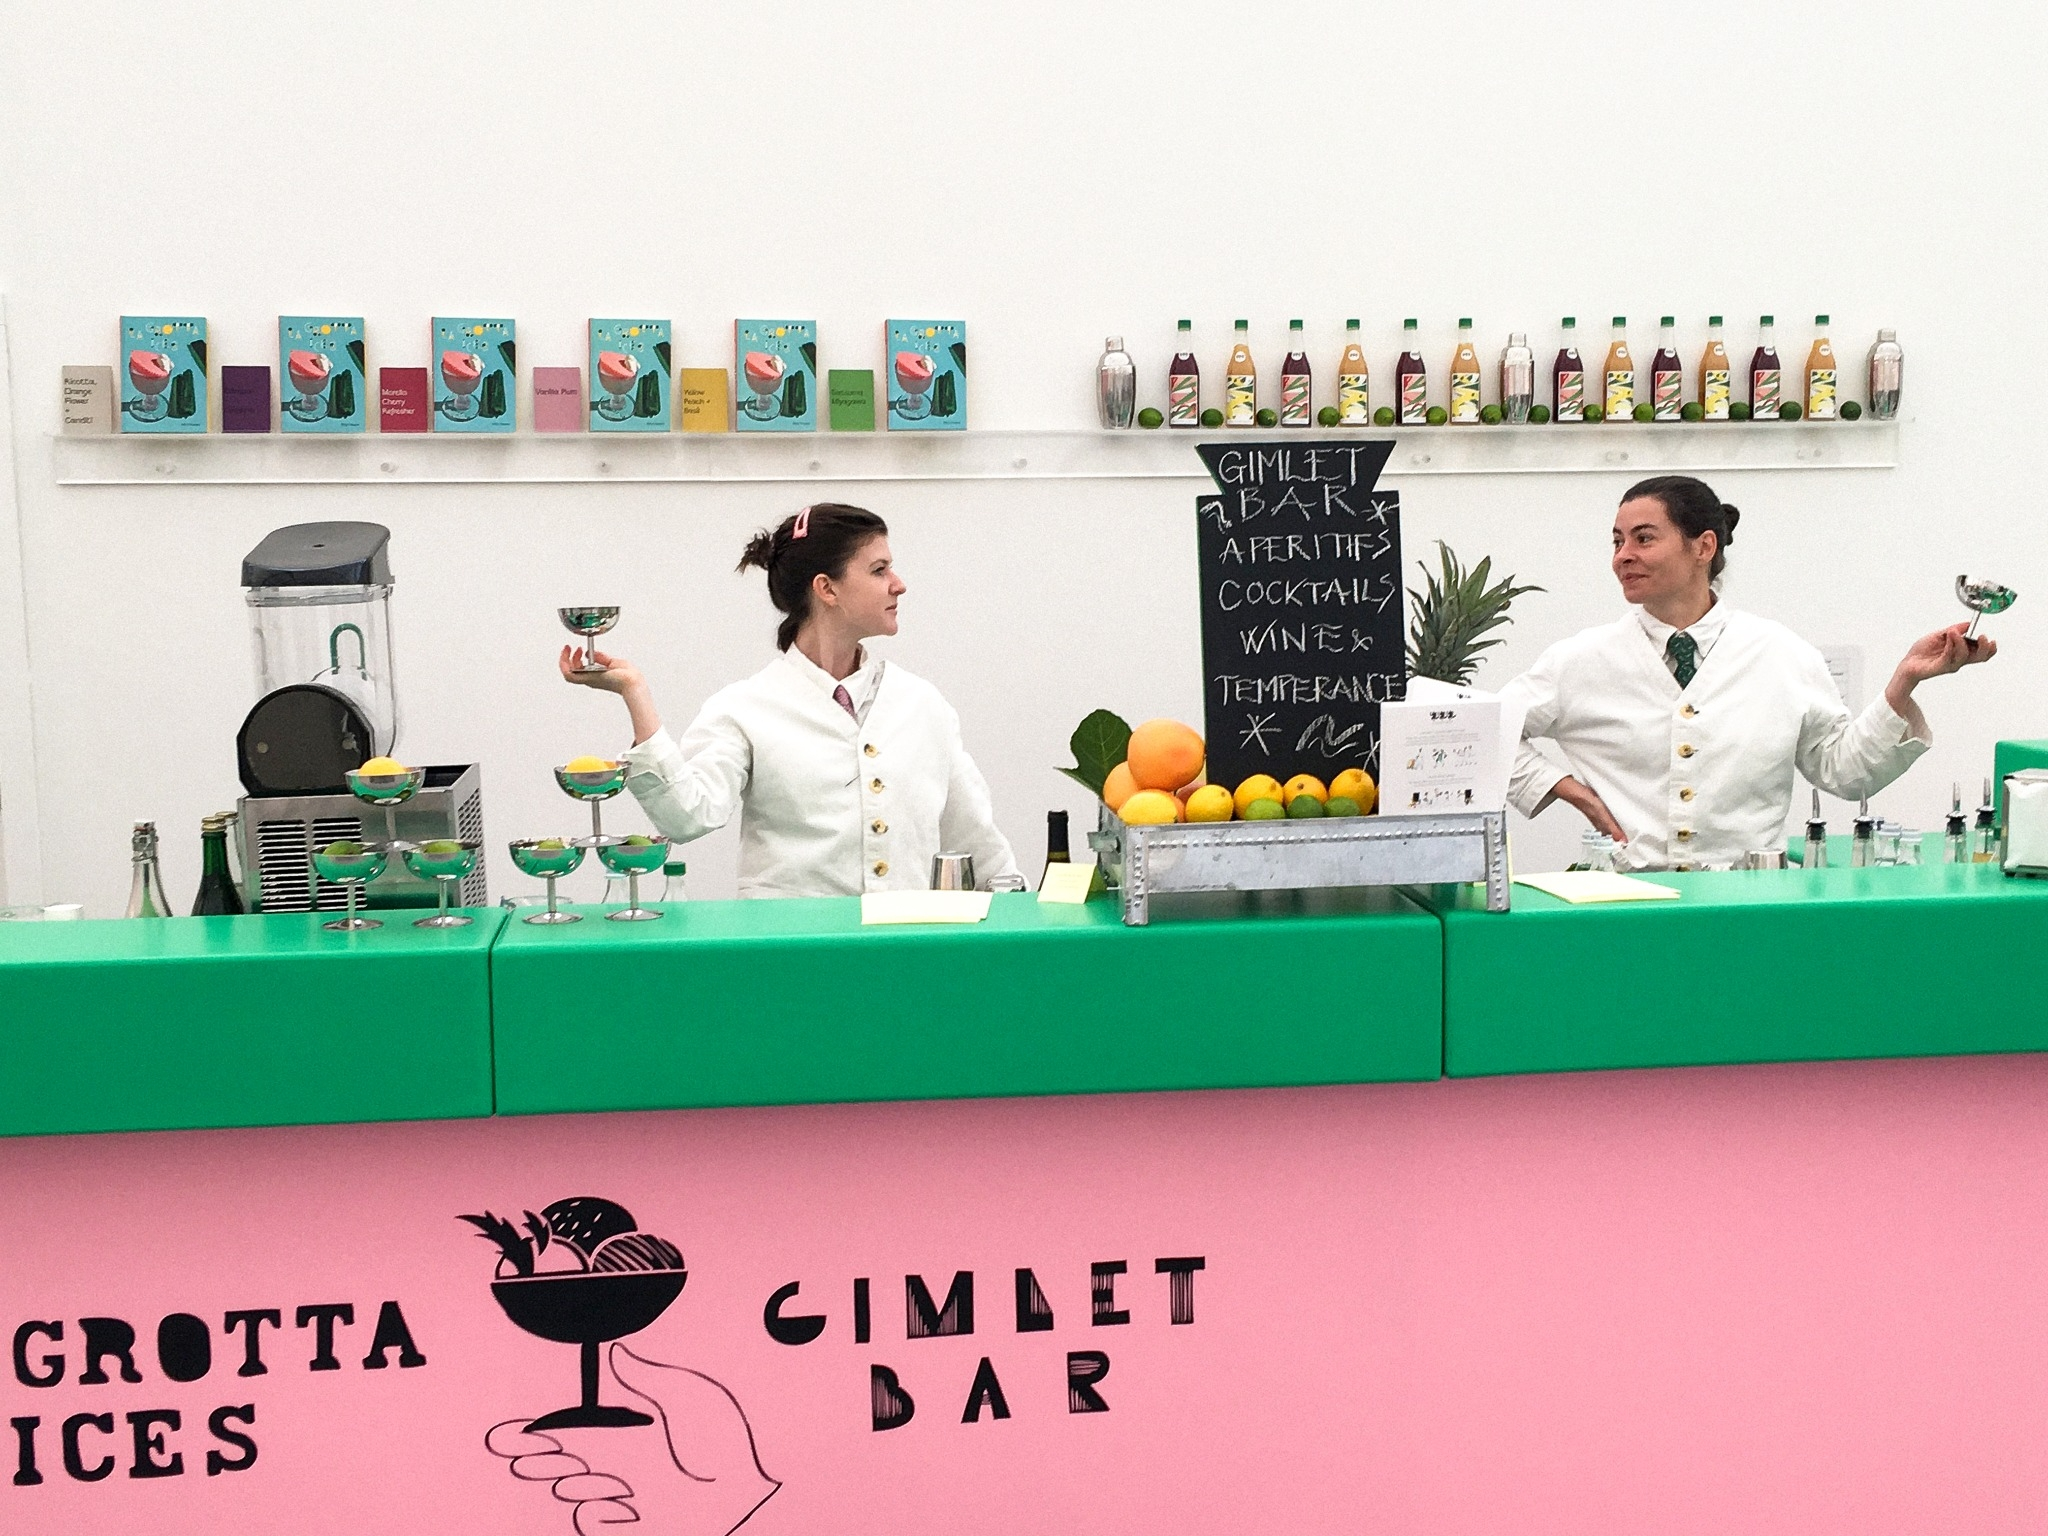 A very special cocktail bar for Frieze Art Fair